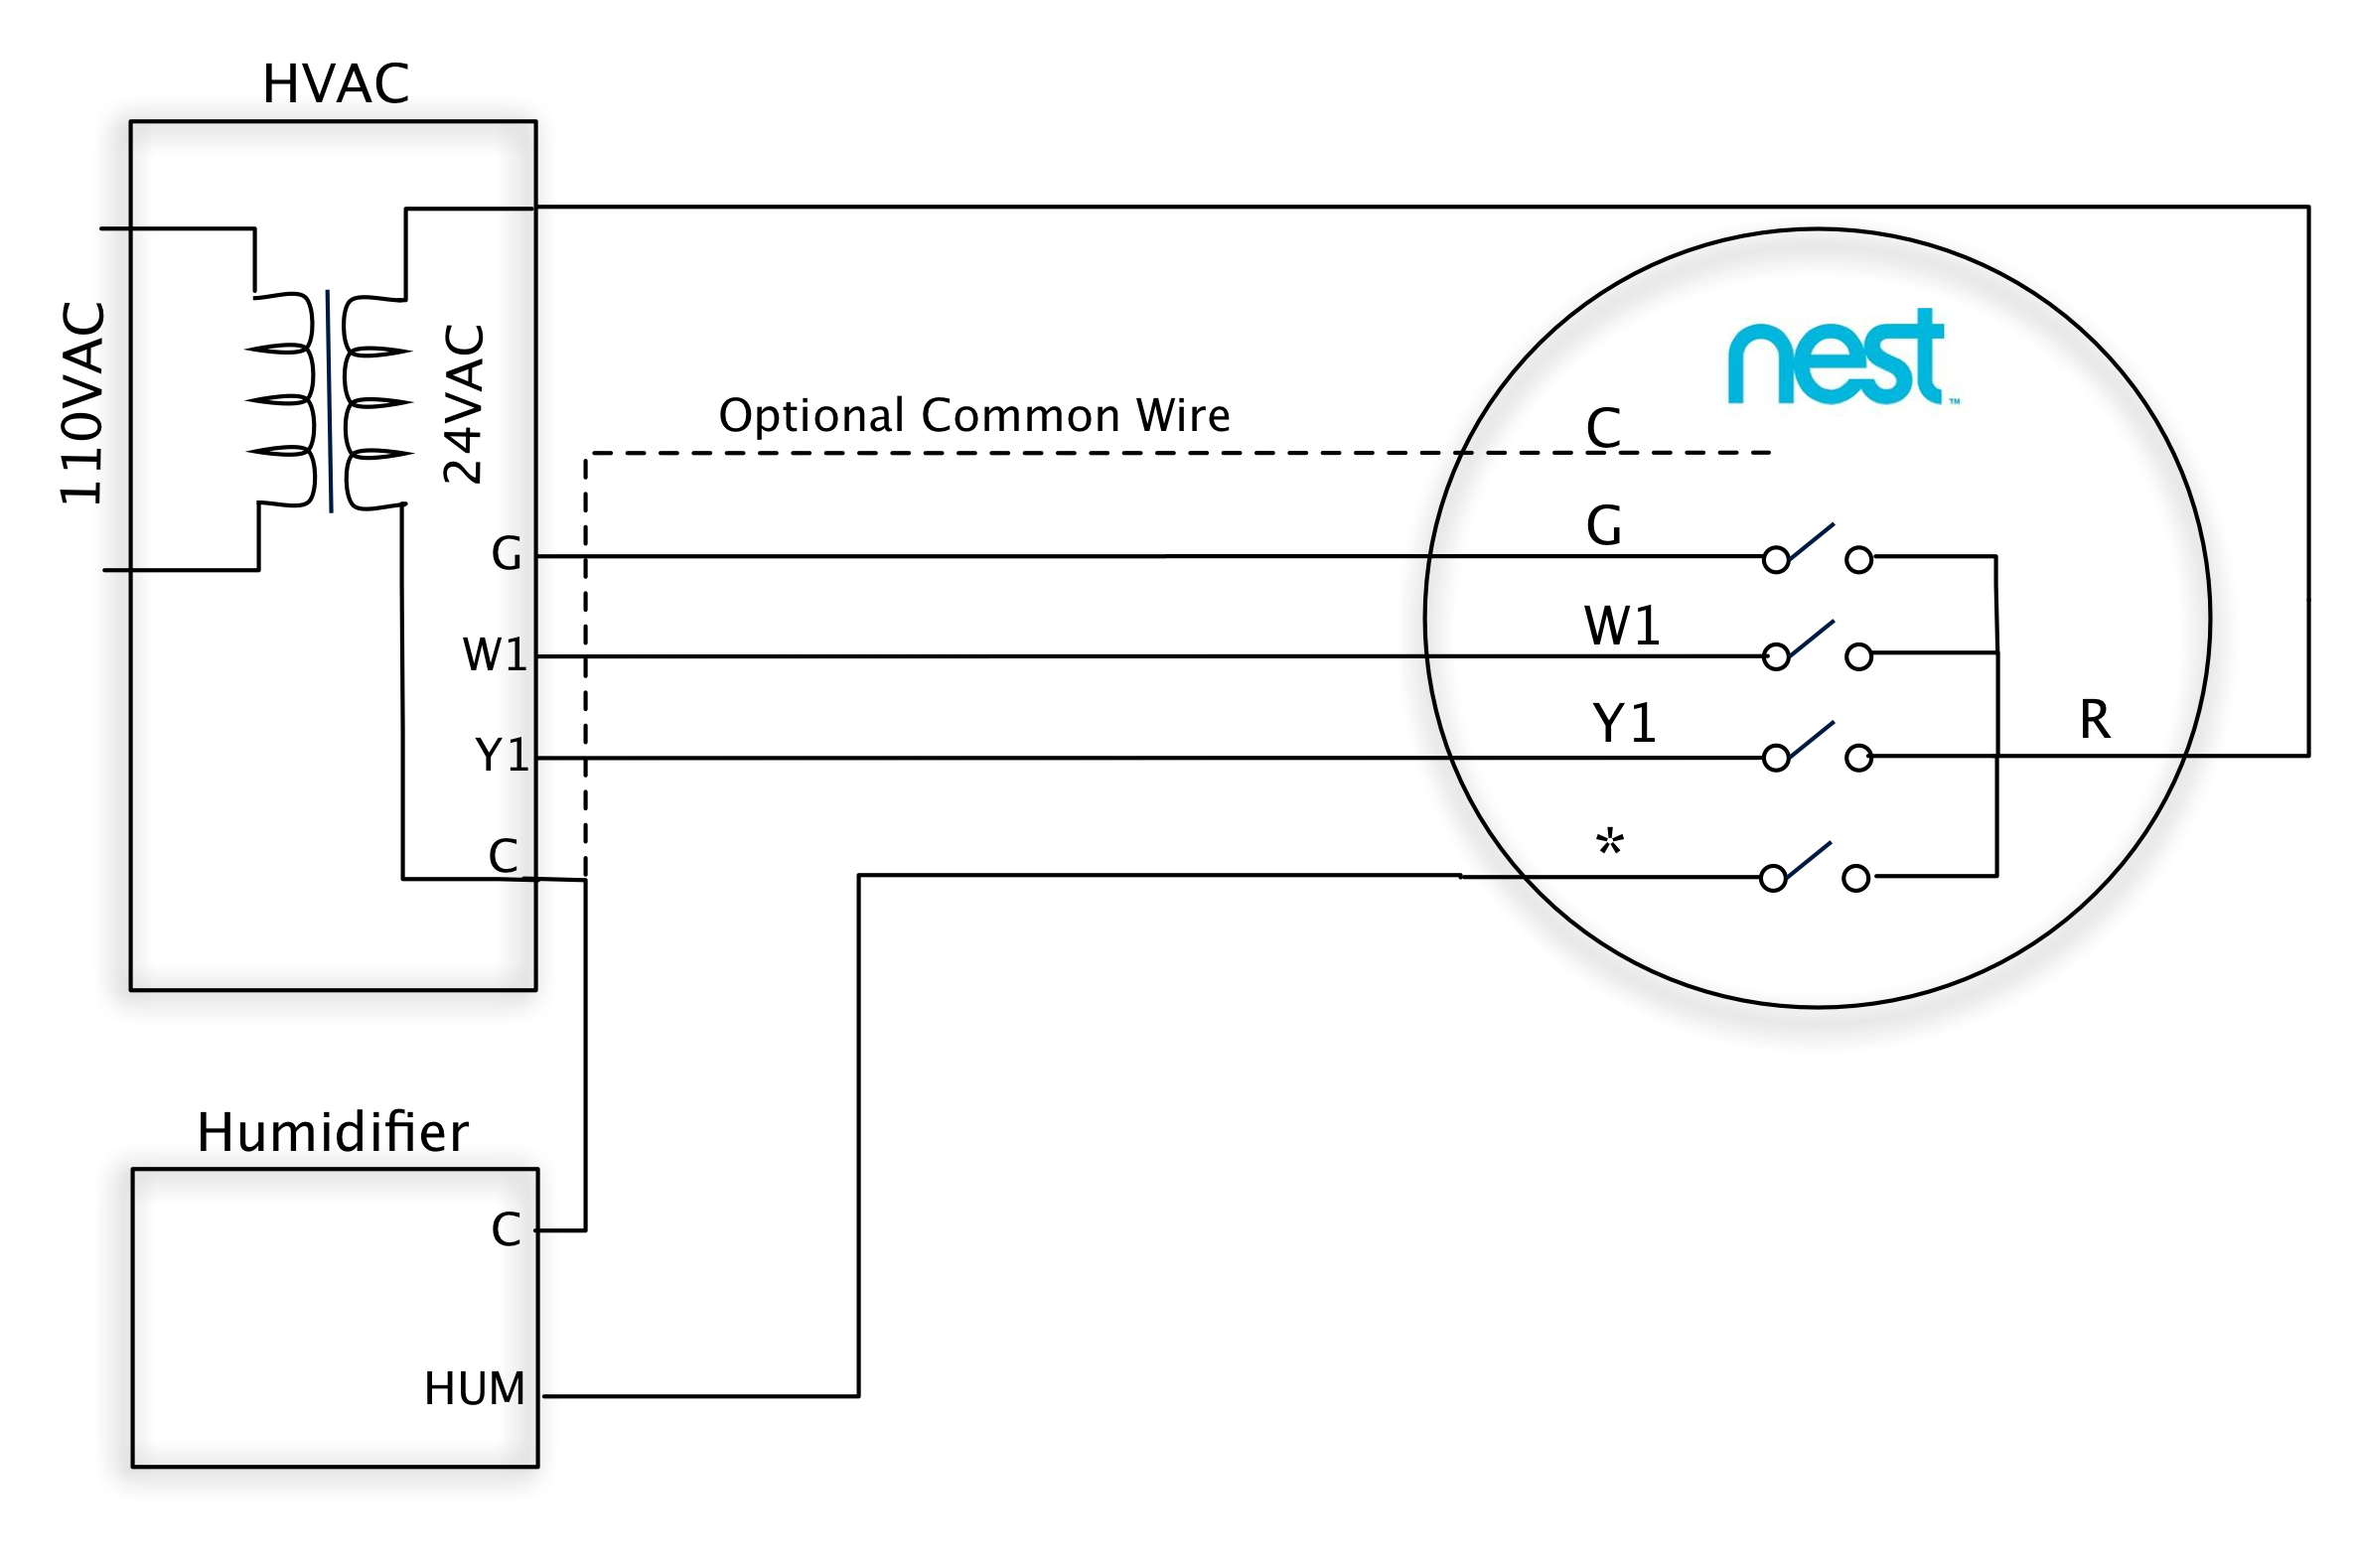 Stand Alone Hum 1 wire nest learning thermostat advanced installation and setup help for central test unit wiring diagram at n-0.co